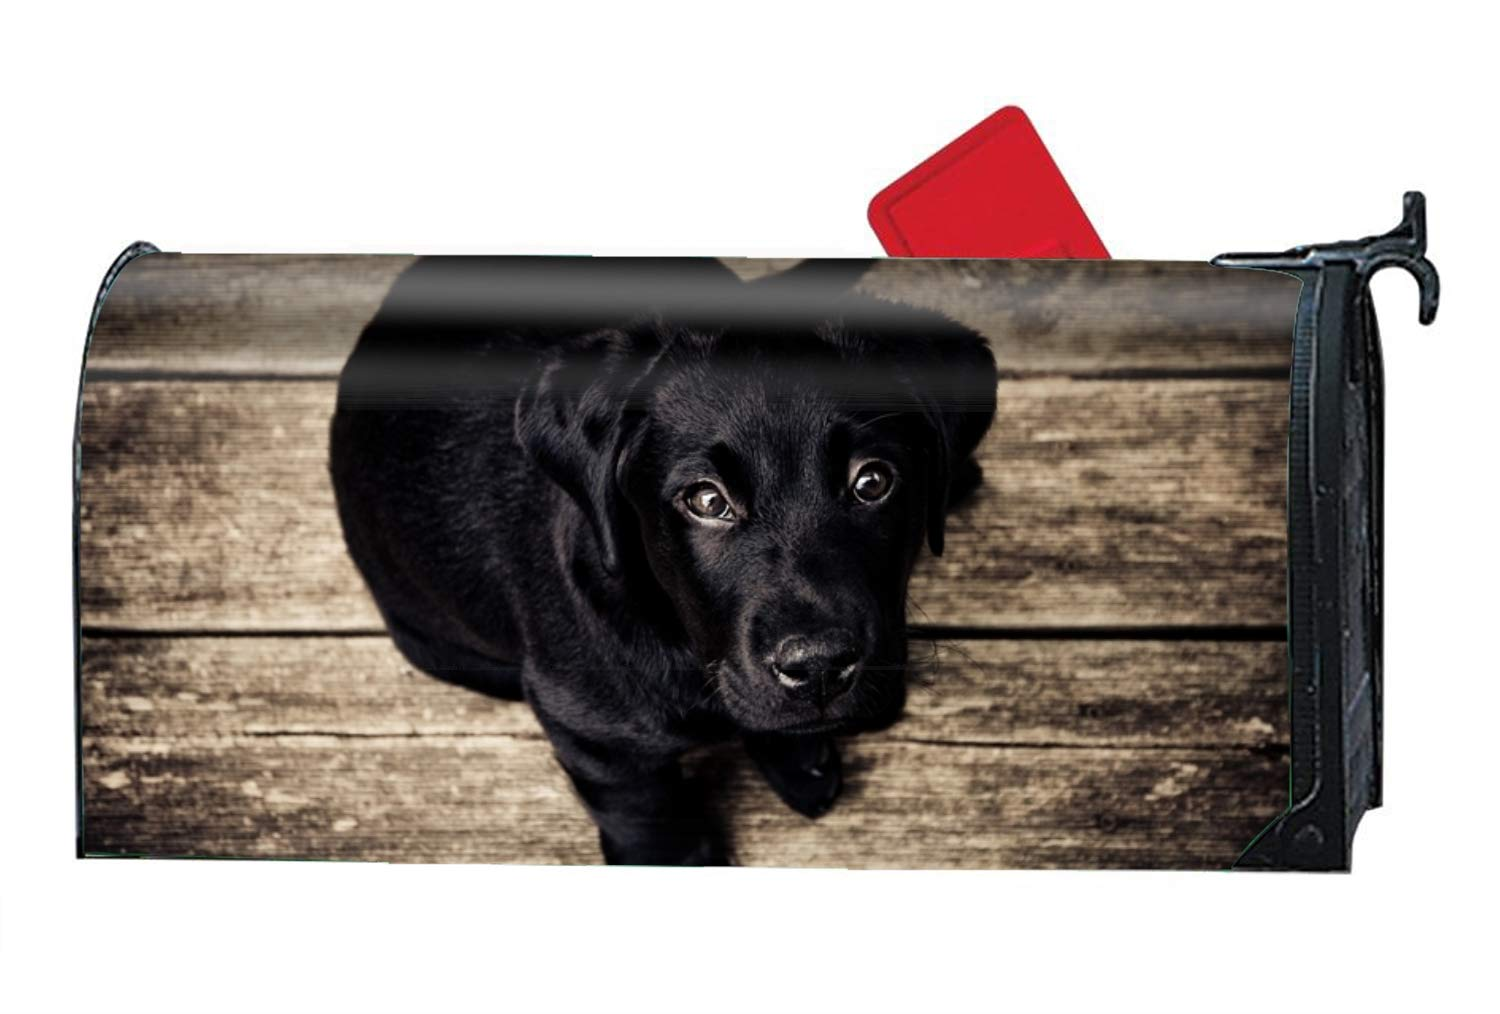 WilBstrn Little Black Dog Magnetic Mailbox Cover£¬Decorative Vinyl Mailbox Wrap for Standard Size